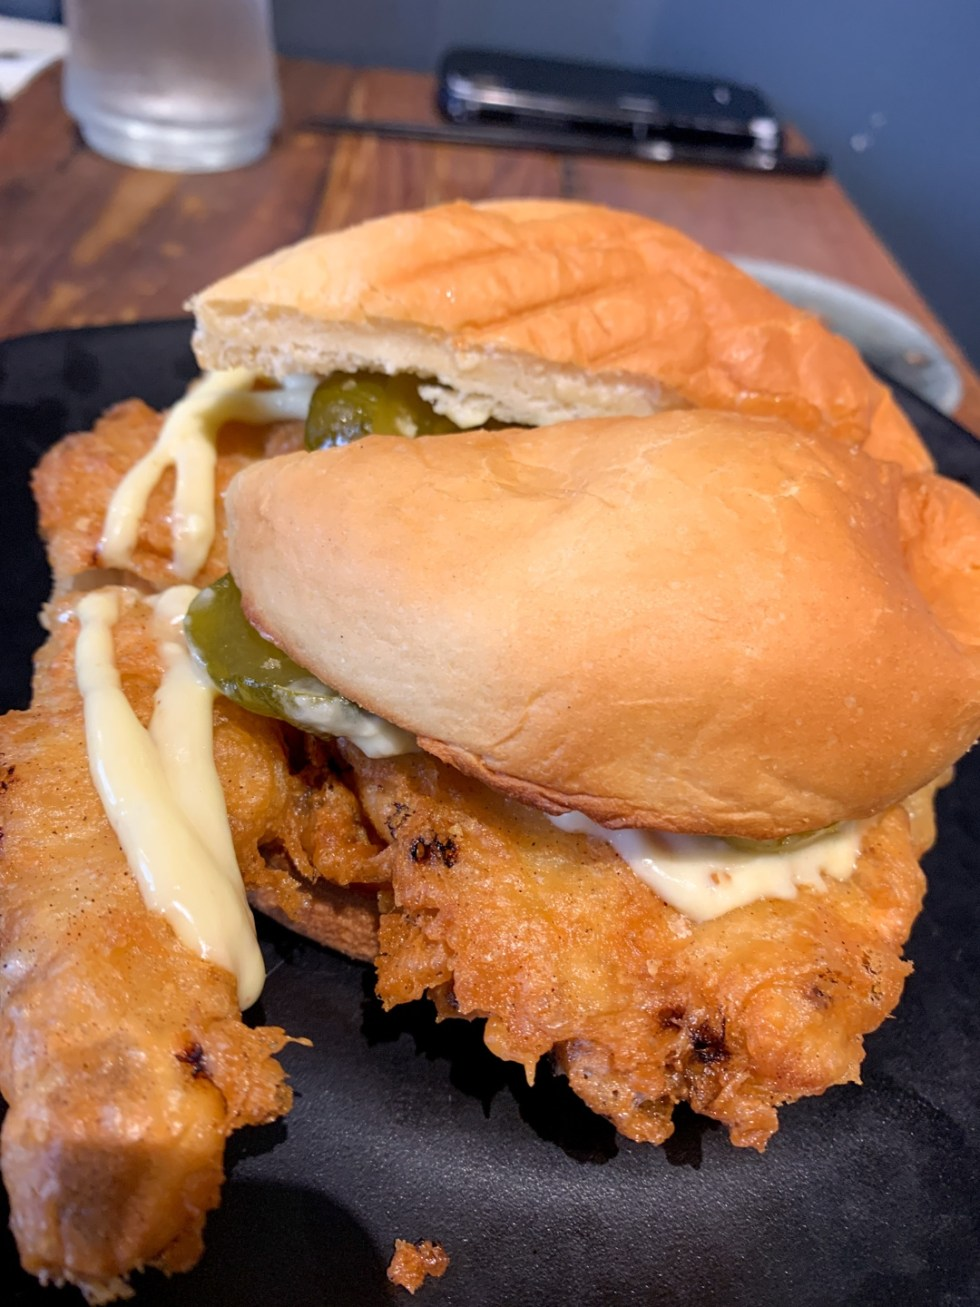 23 Awesome Things To Do in Durham - I'm Fixin' To - @imfixintoblog | Things to do in Durham by popular NC travel blog, I'm Fixin' To: image of a fried fish sandwich on black plate.